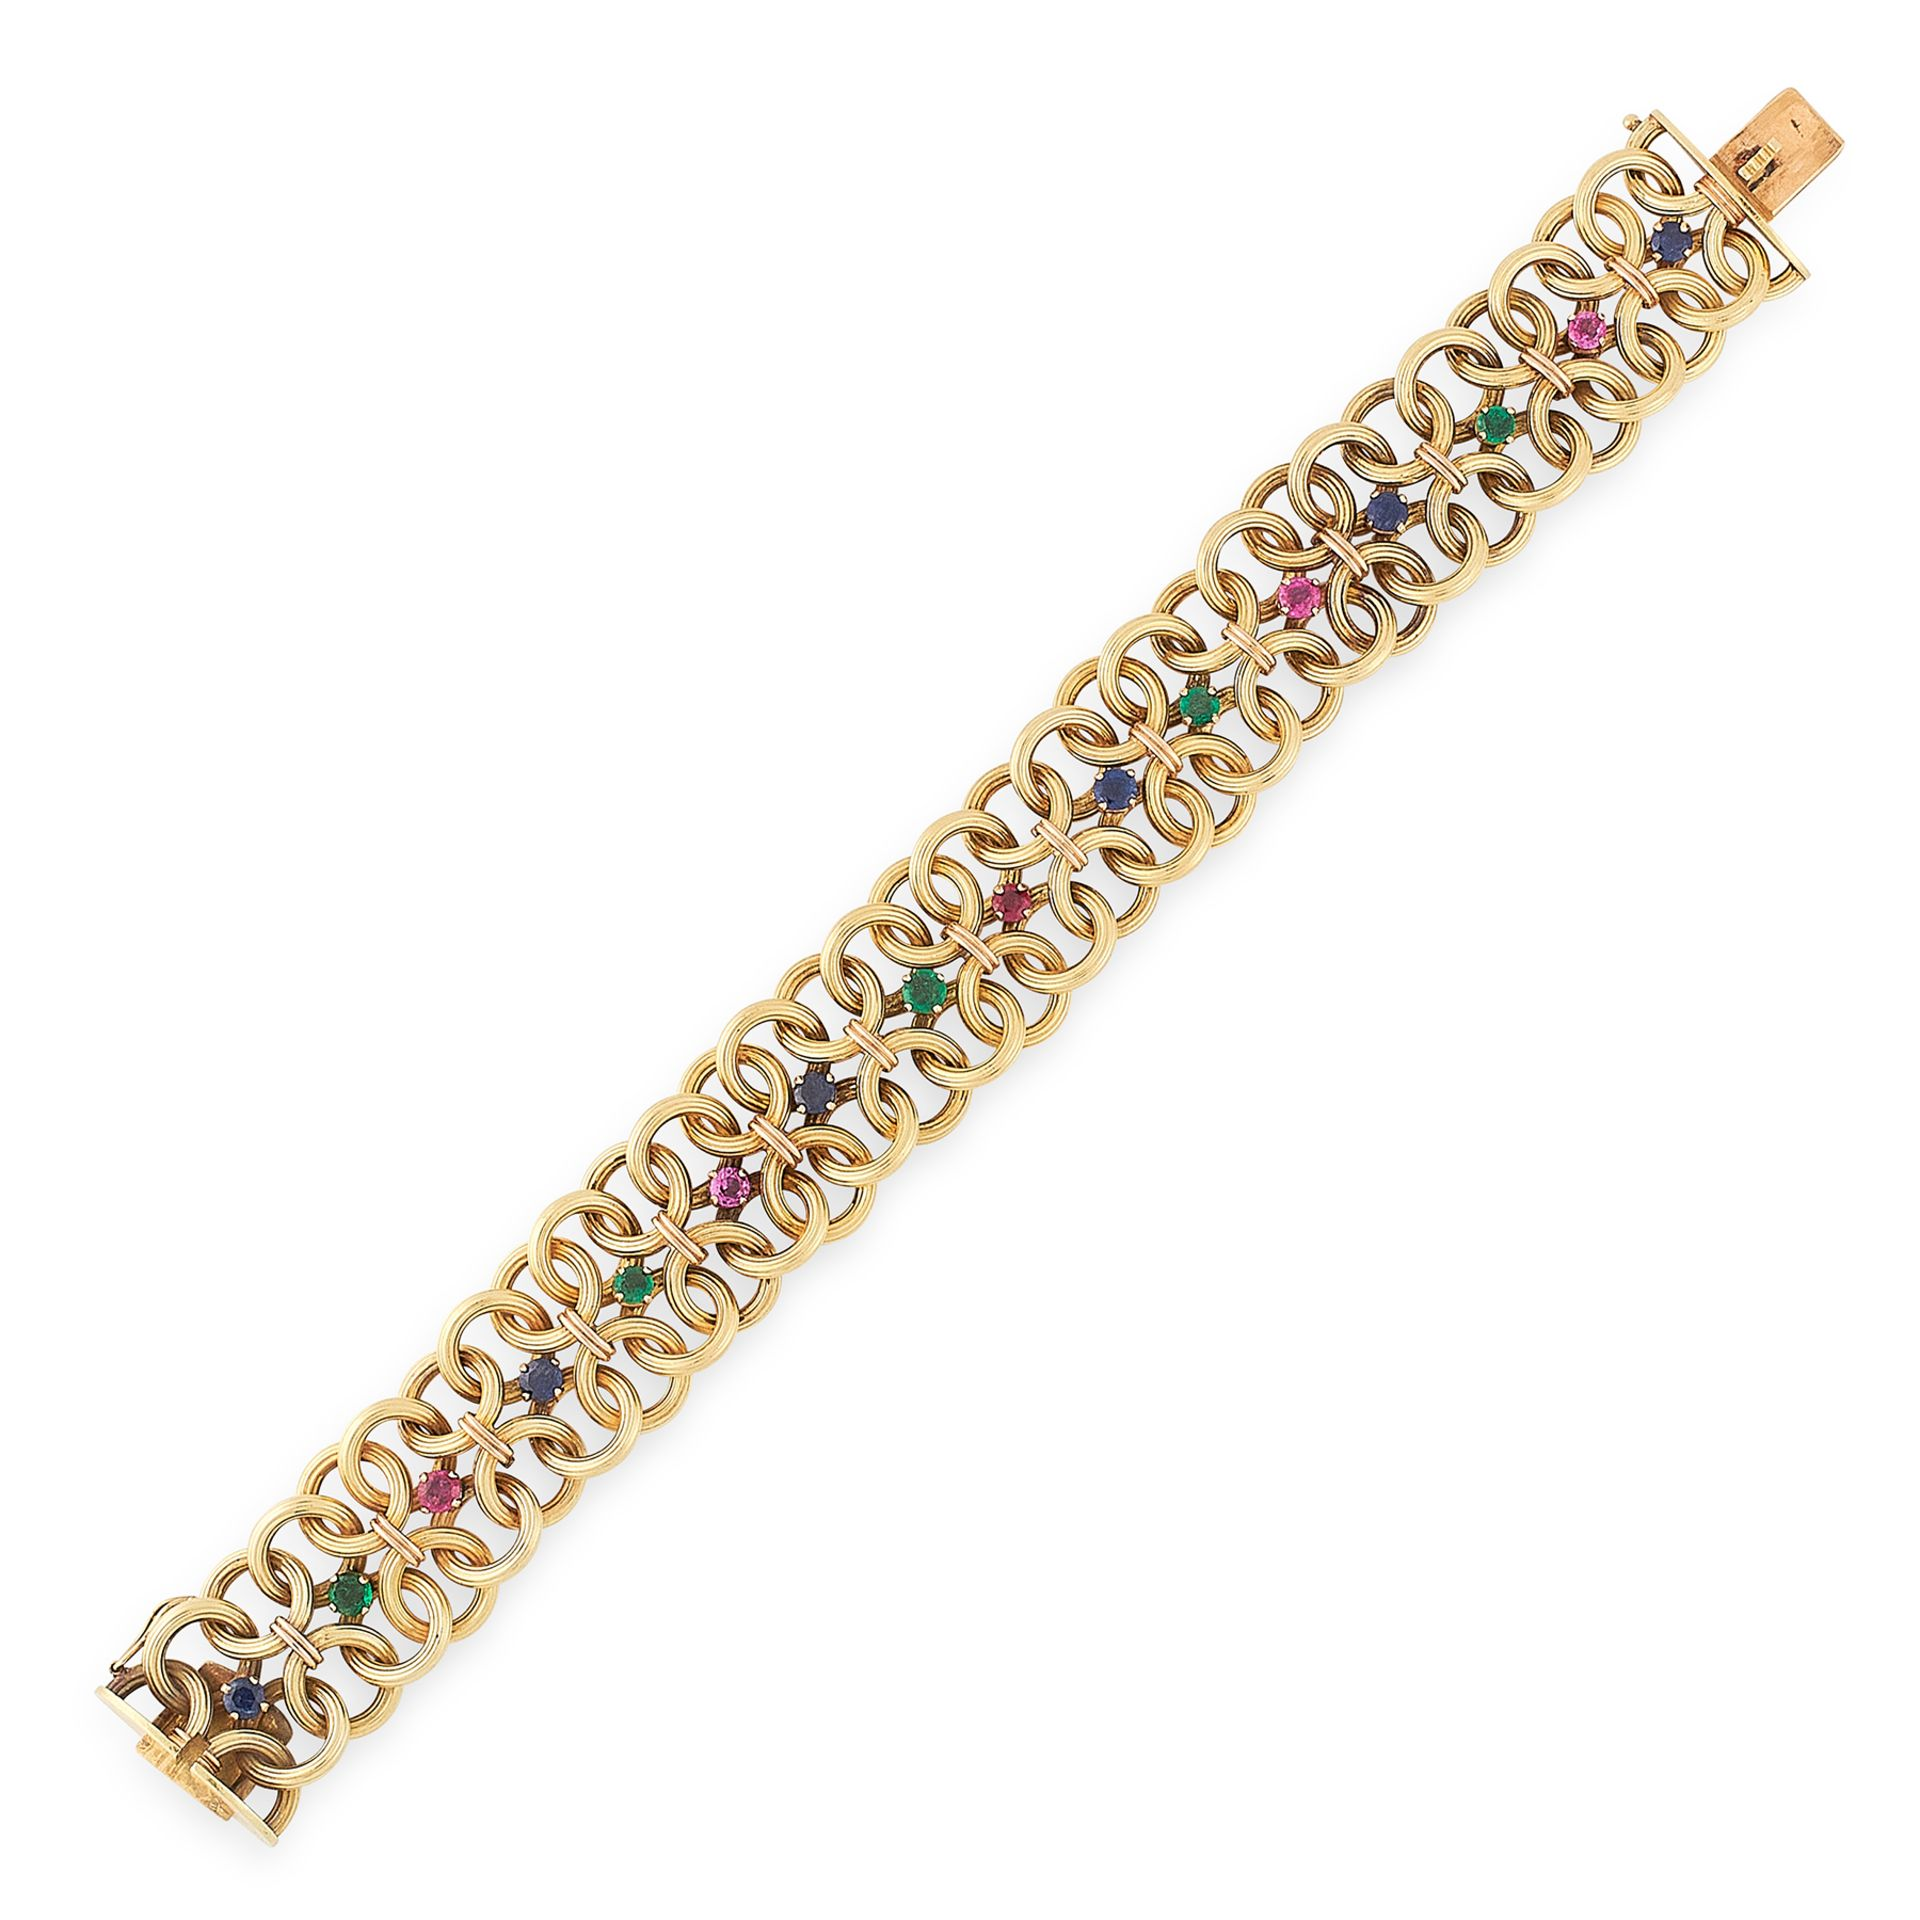 Los 33 - A VINTAGE RUBY, EMERALD AND SAPPHIRE BRACELET, CARTIER 1967 in 18ct yellow gold, designed as a